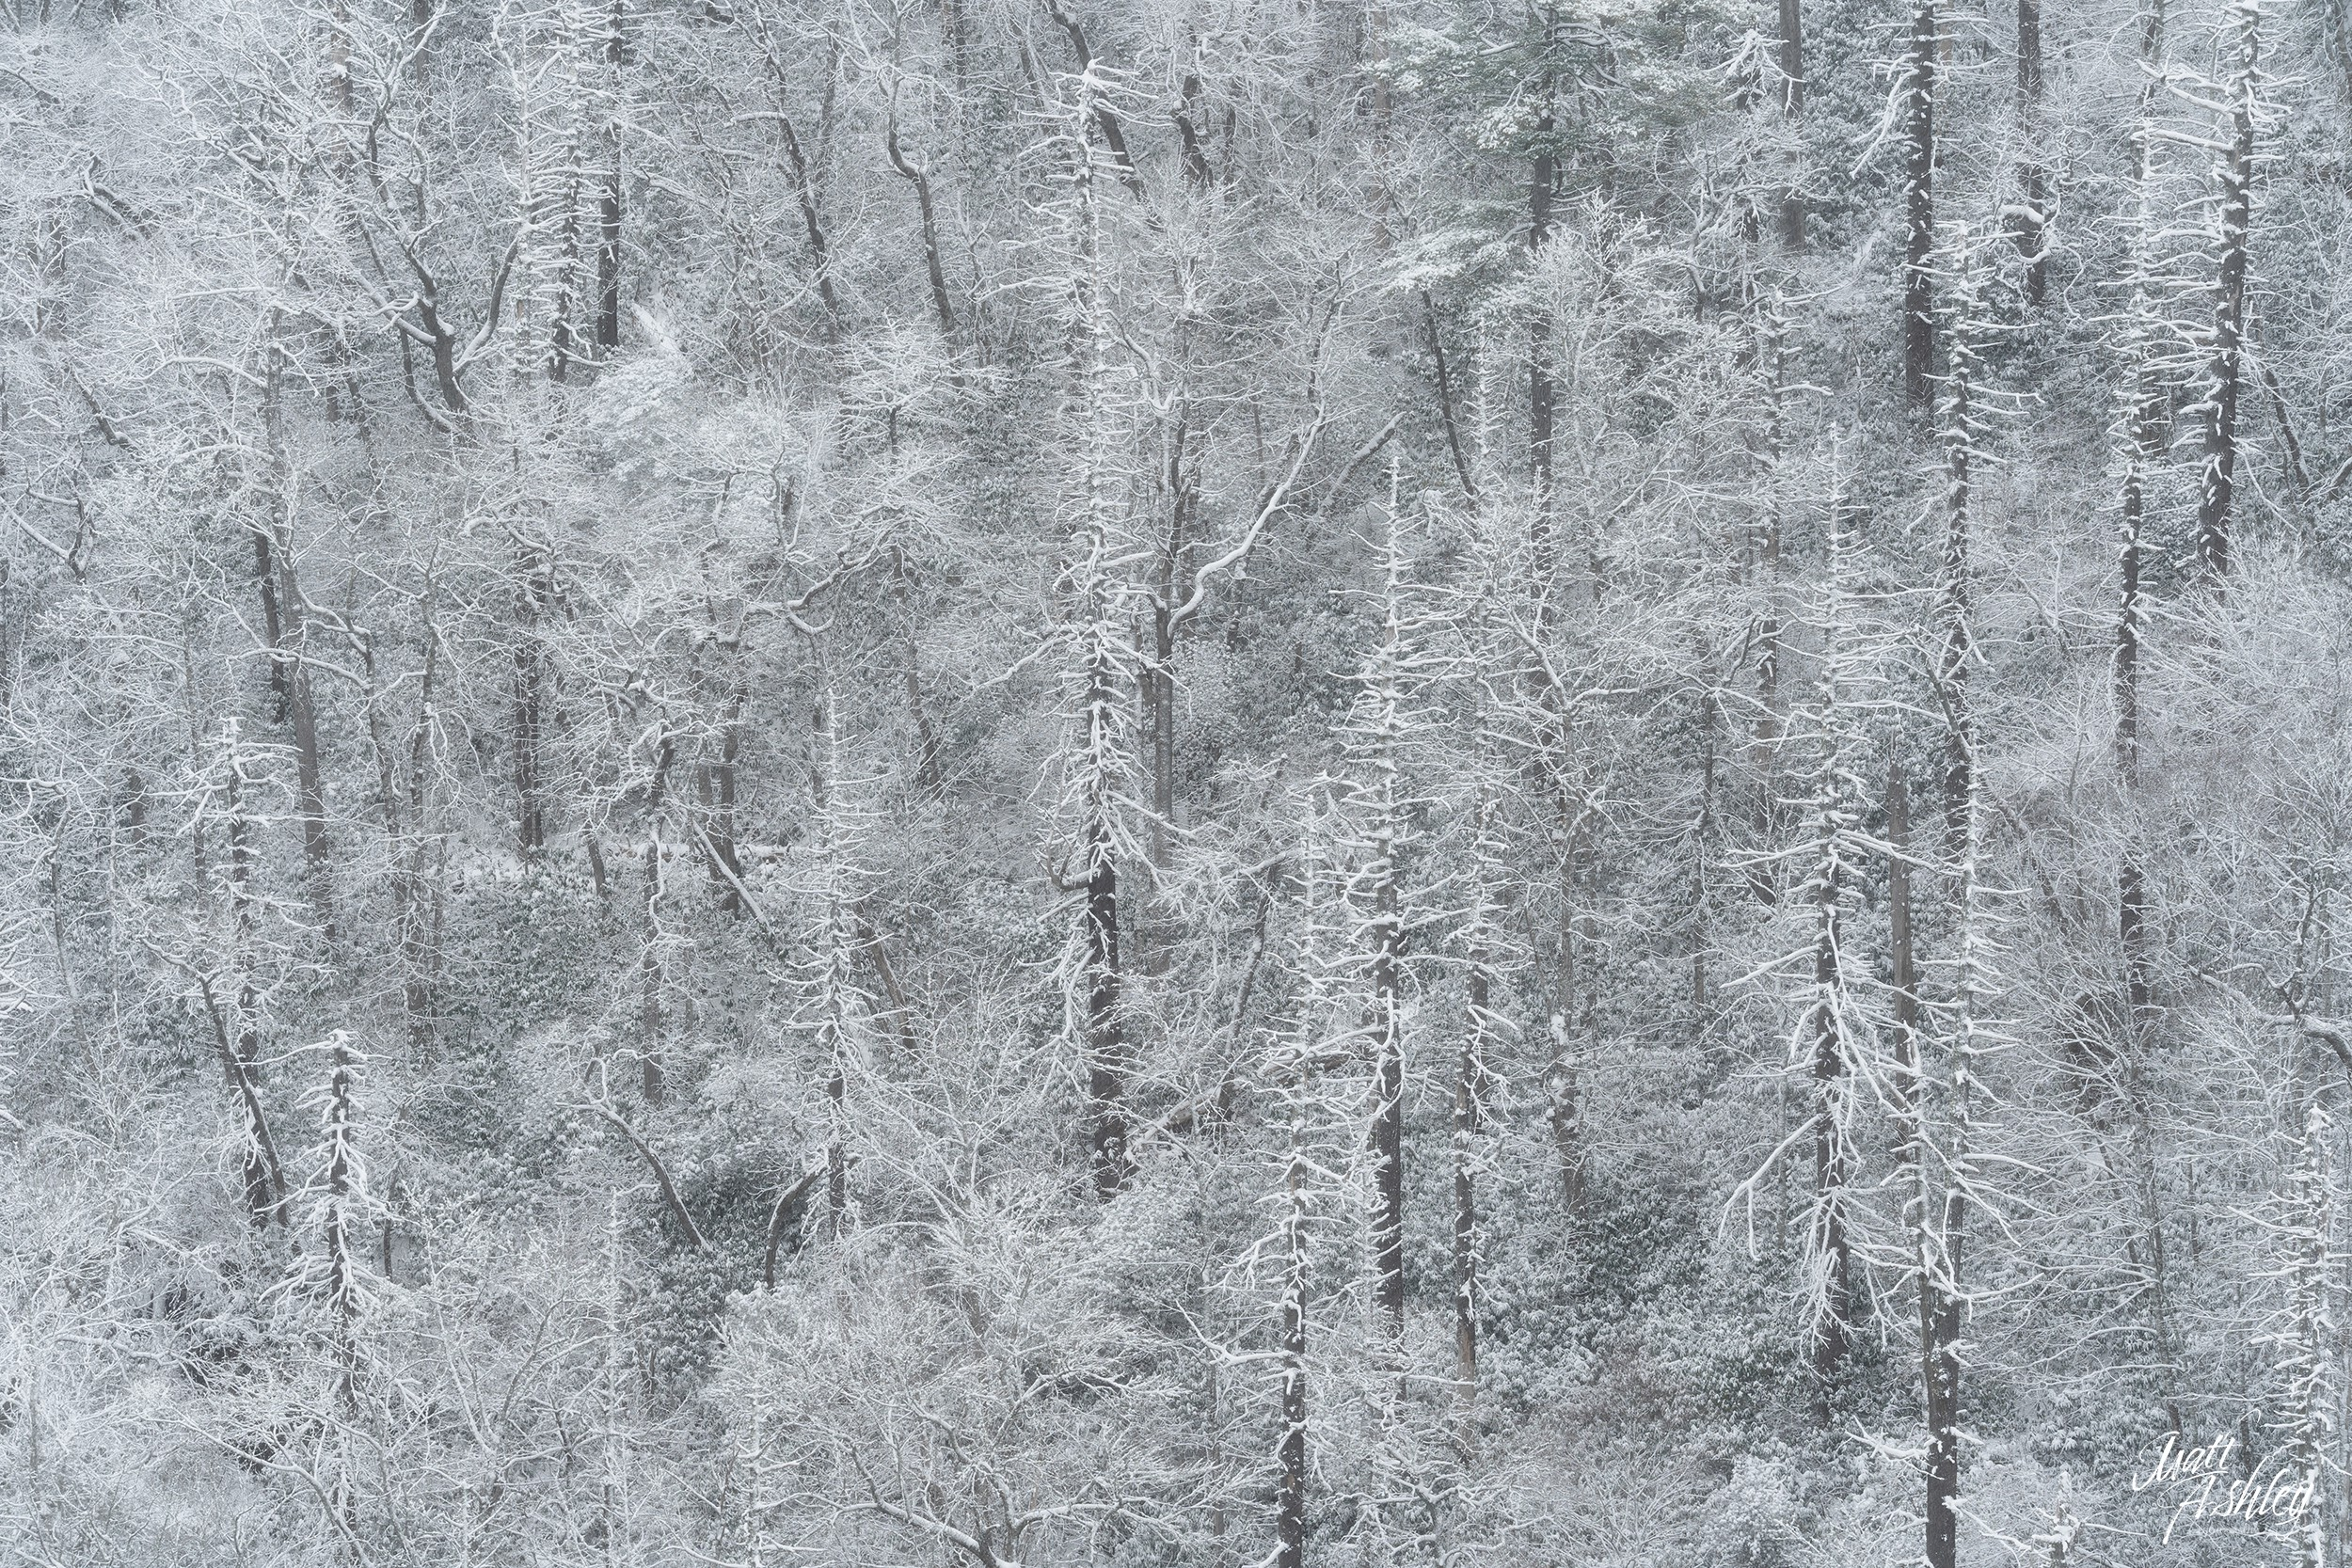 Abstract image of snow covered trees.